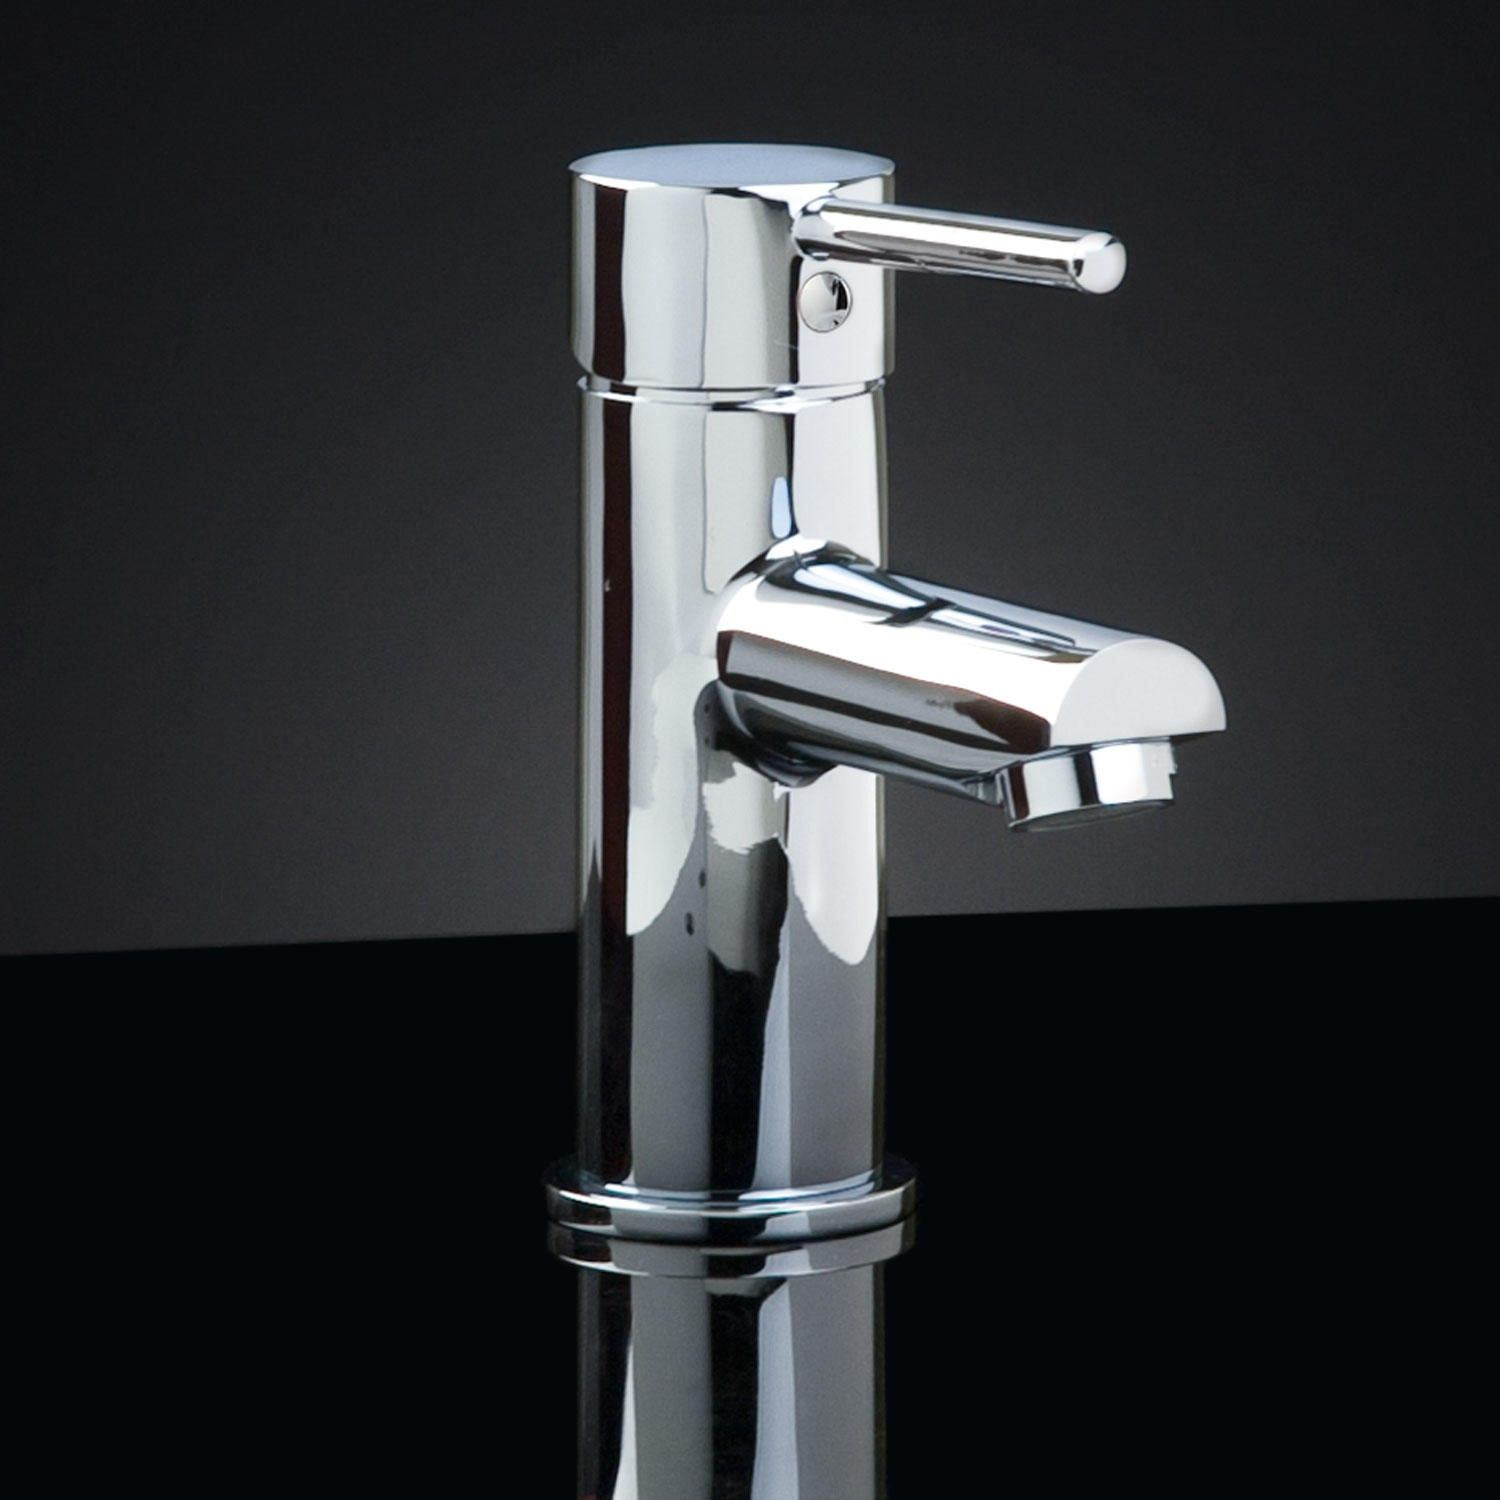 Rotunda Straight Spout Single-Hole Faucet with Pop-Up Drain | Faucet ...